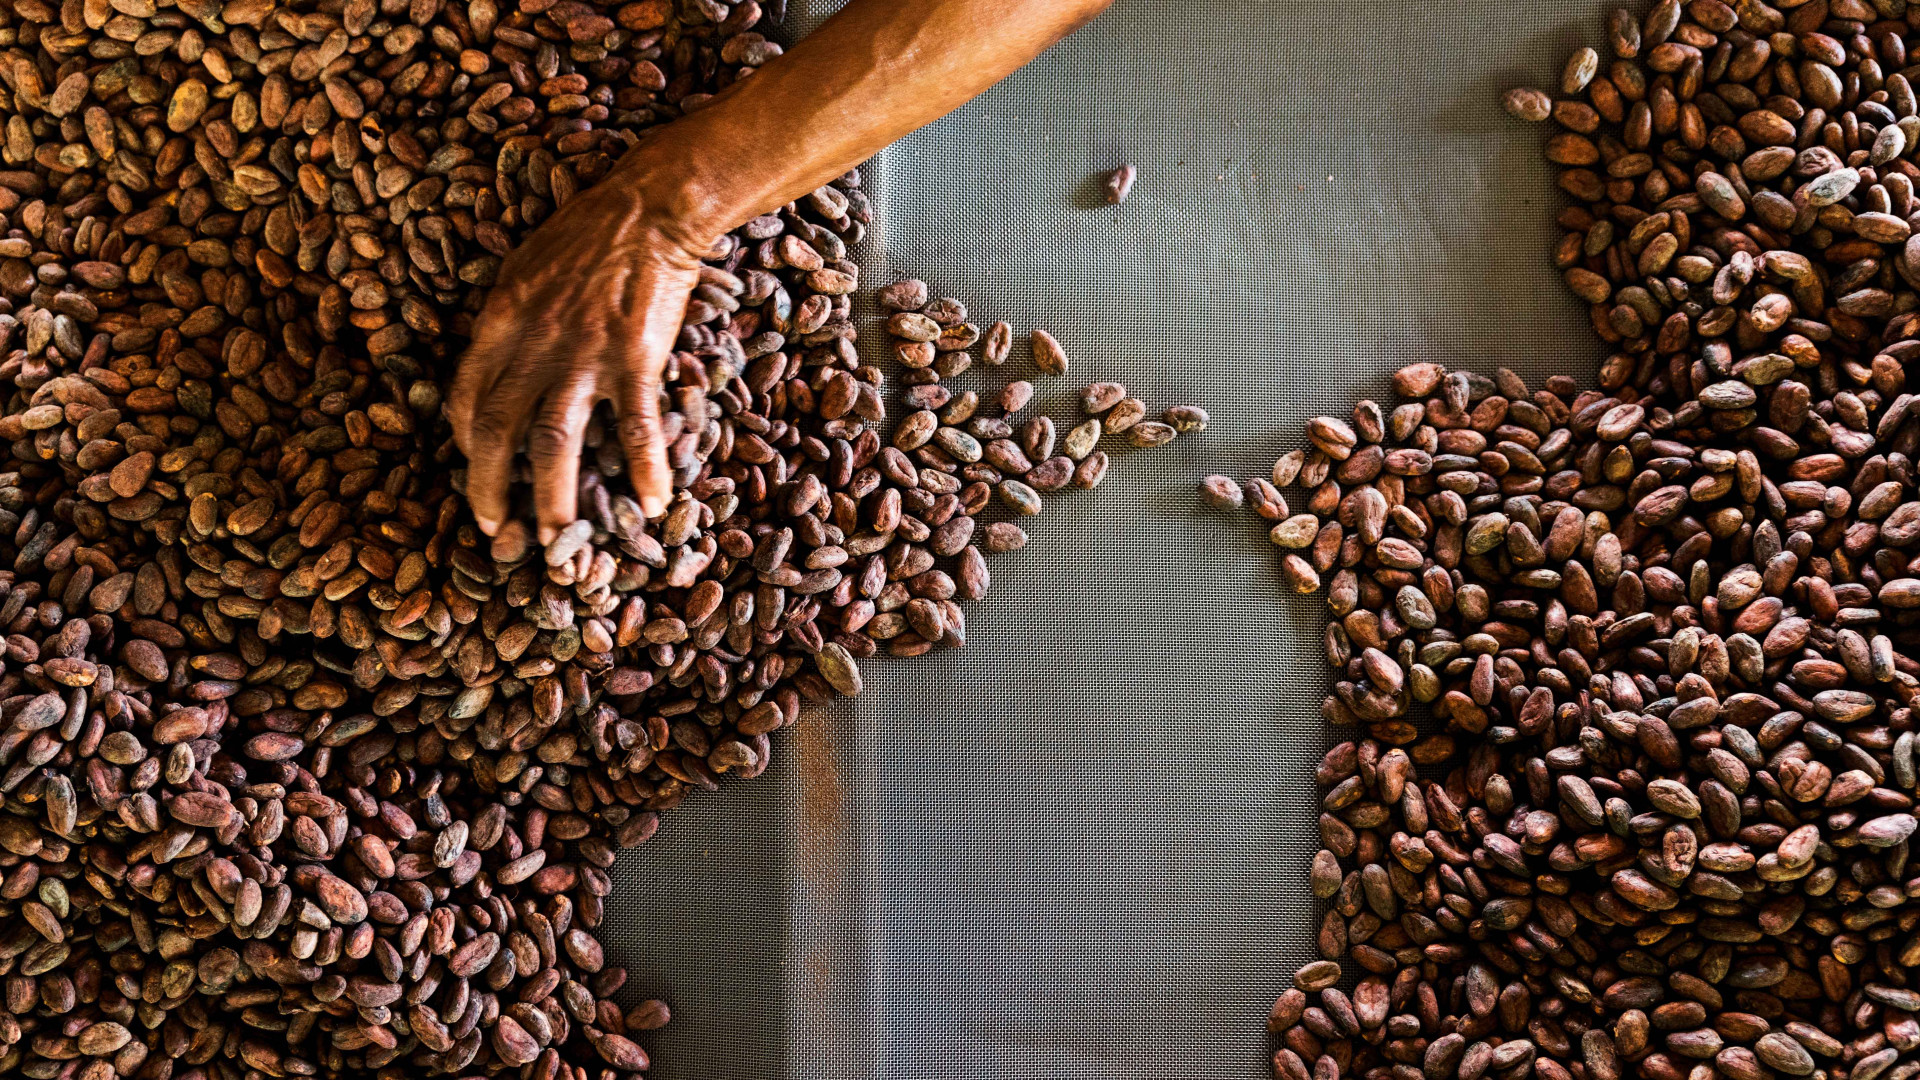 Grenada food and drink: cocoa beans in Grenada